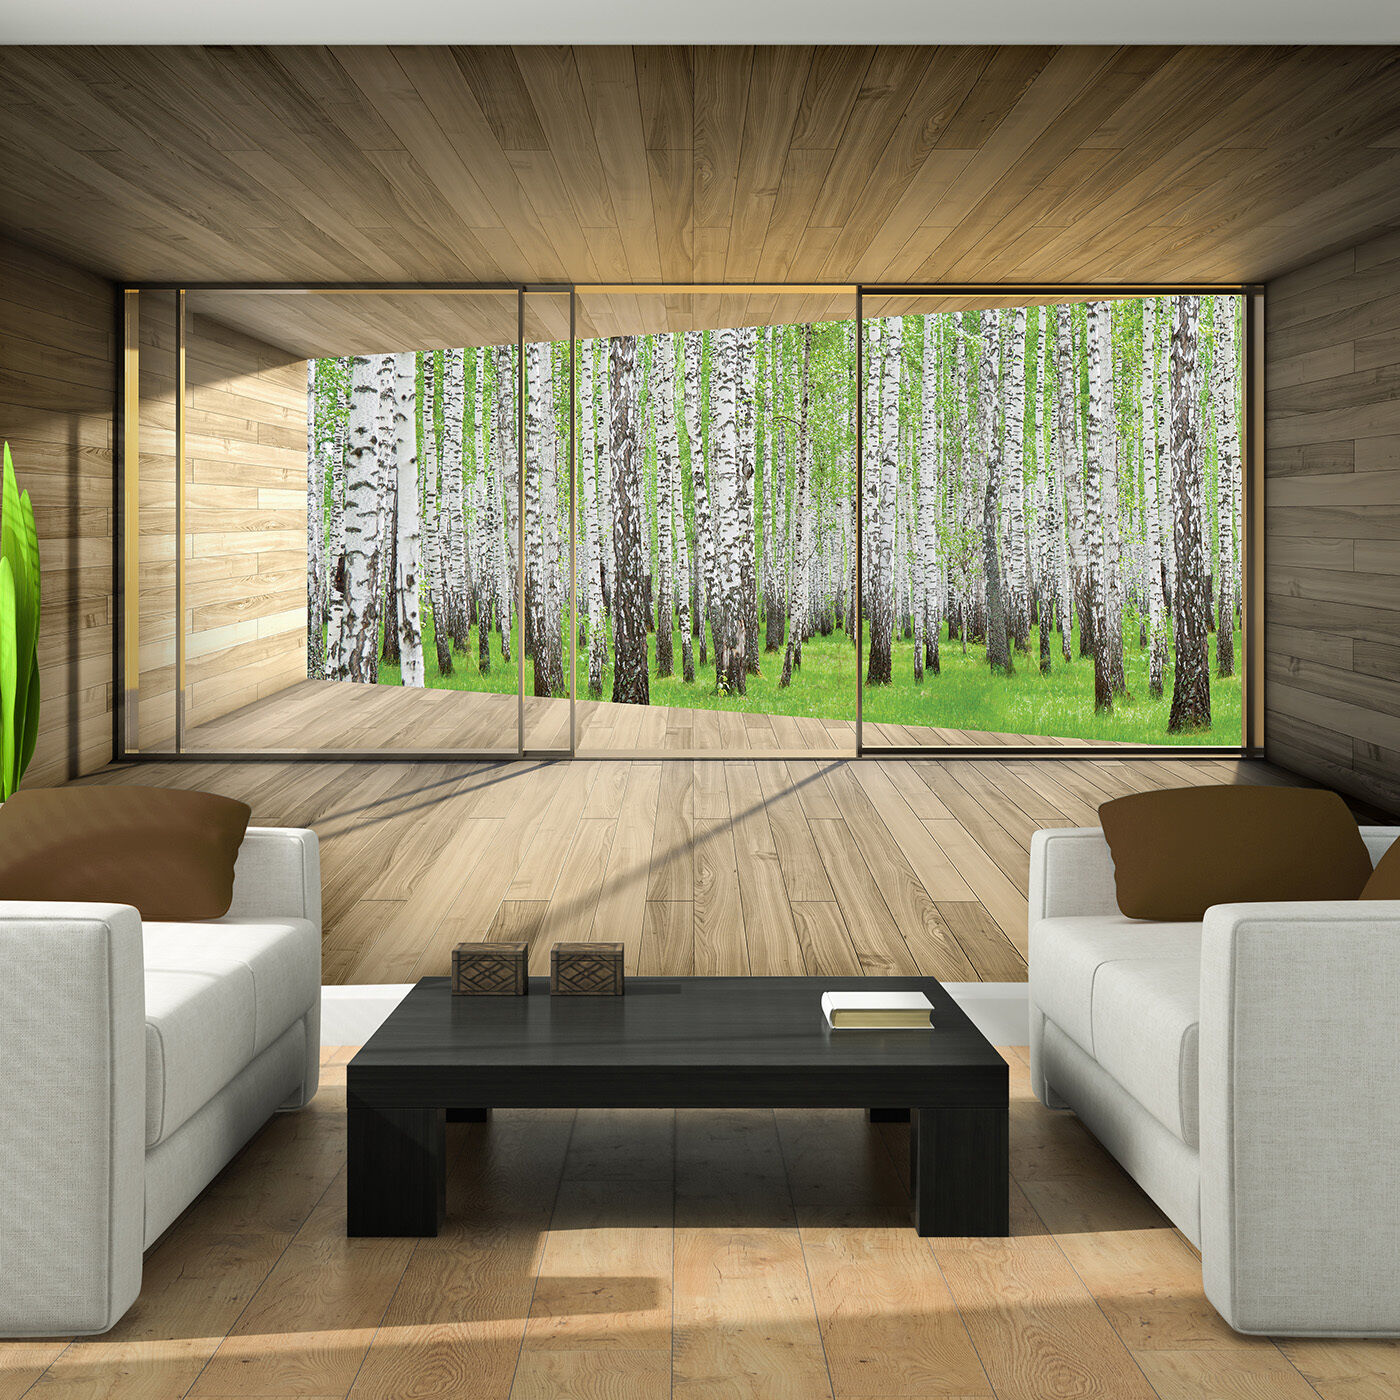 foto poster wandbild tapeten tapete gr n wald natur birke pflanzen 3fx3304p8 eur 39 90. Black Bedroom Furniture Sets. Home Design Ideas